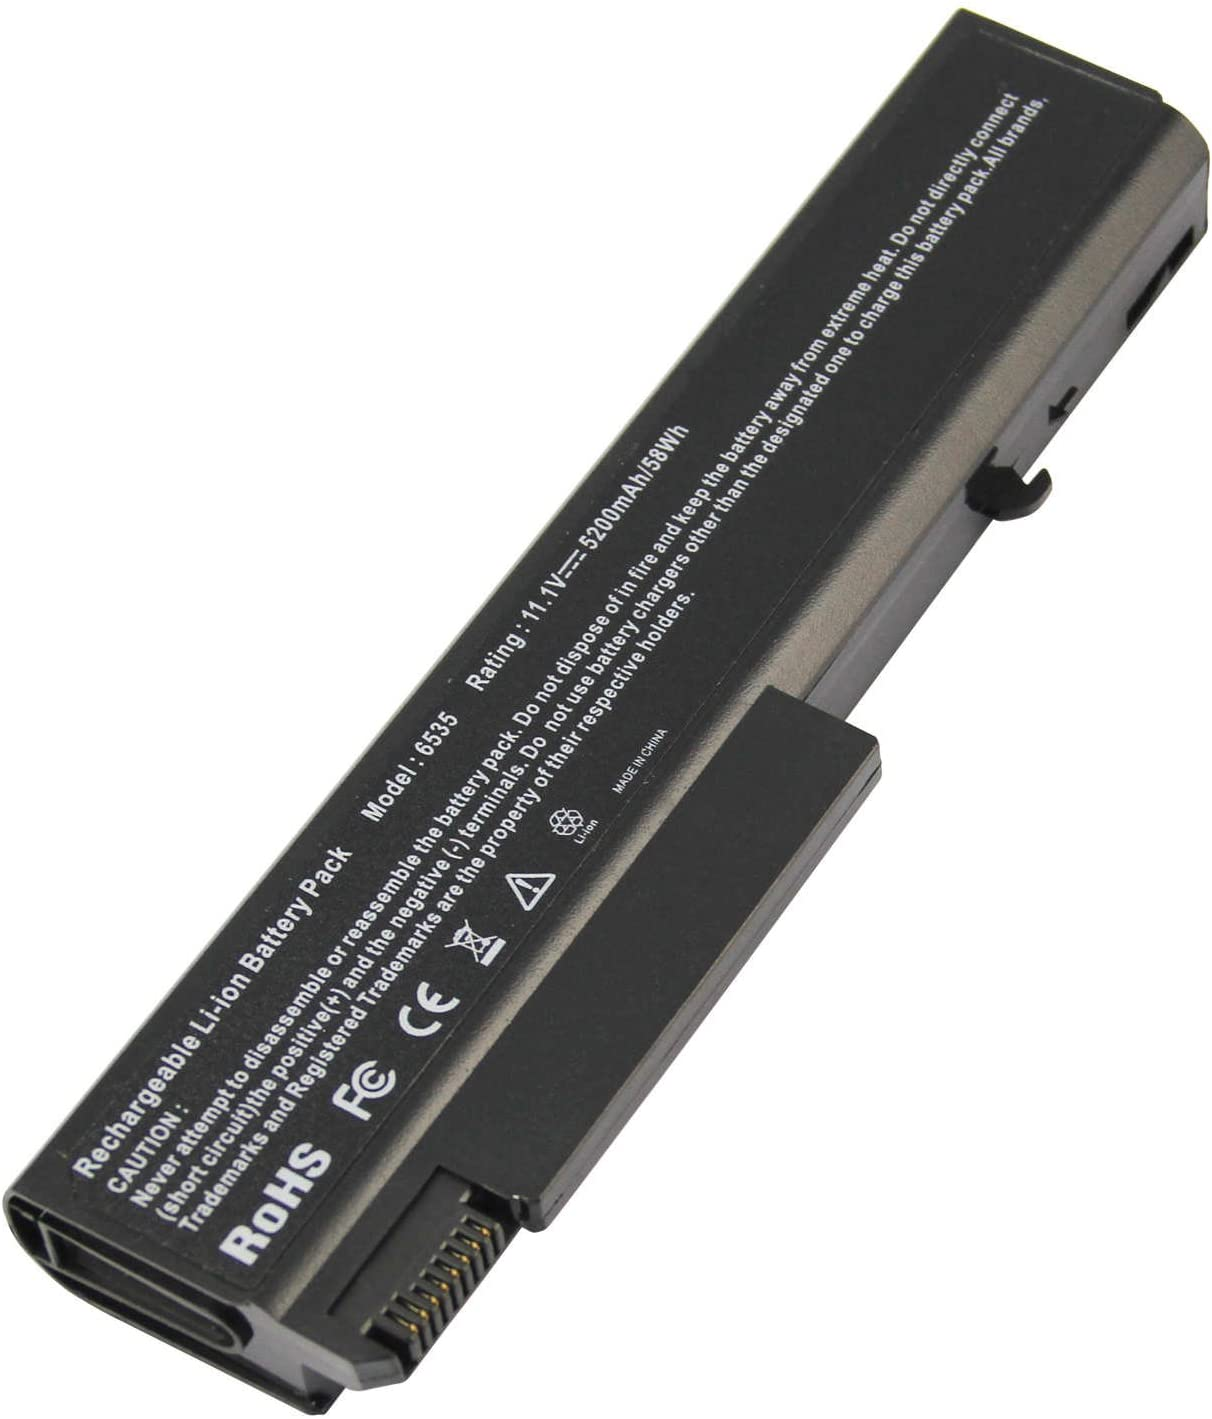 Laptop Battery Compatible with HP EliteBook 8440P 6930P 8440W ProBook 6440B 6455B 6540B 6545B 6550B Compaq 6730B 6735B 6530B, fits P/N 482962-001 HSTNN-UB69 KU531AA - High Extended Performance